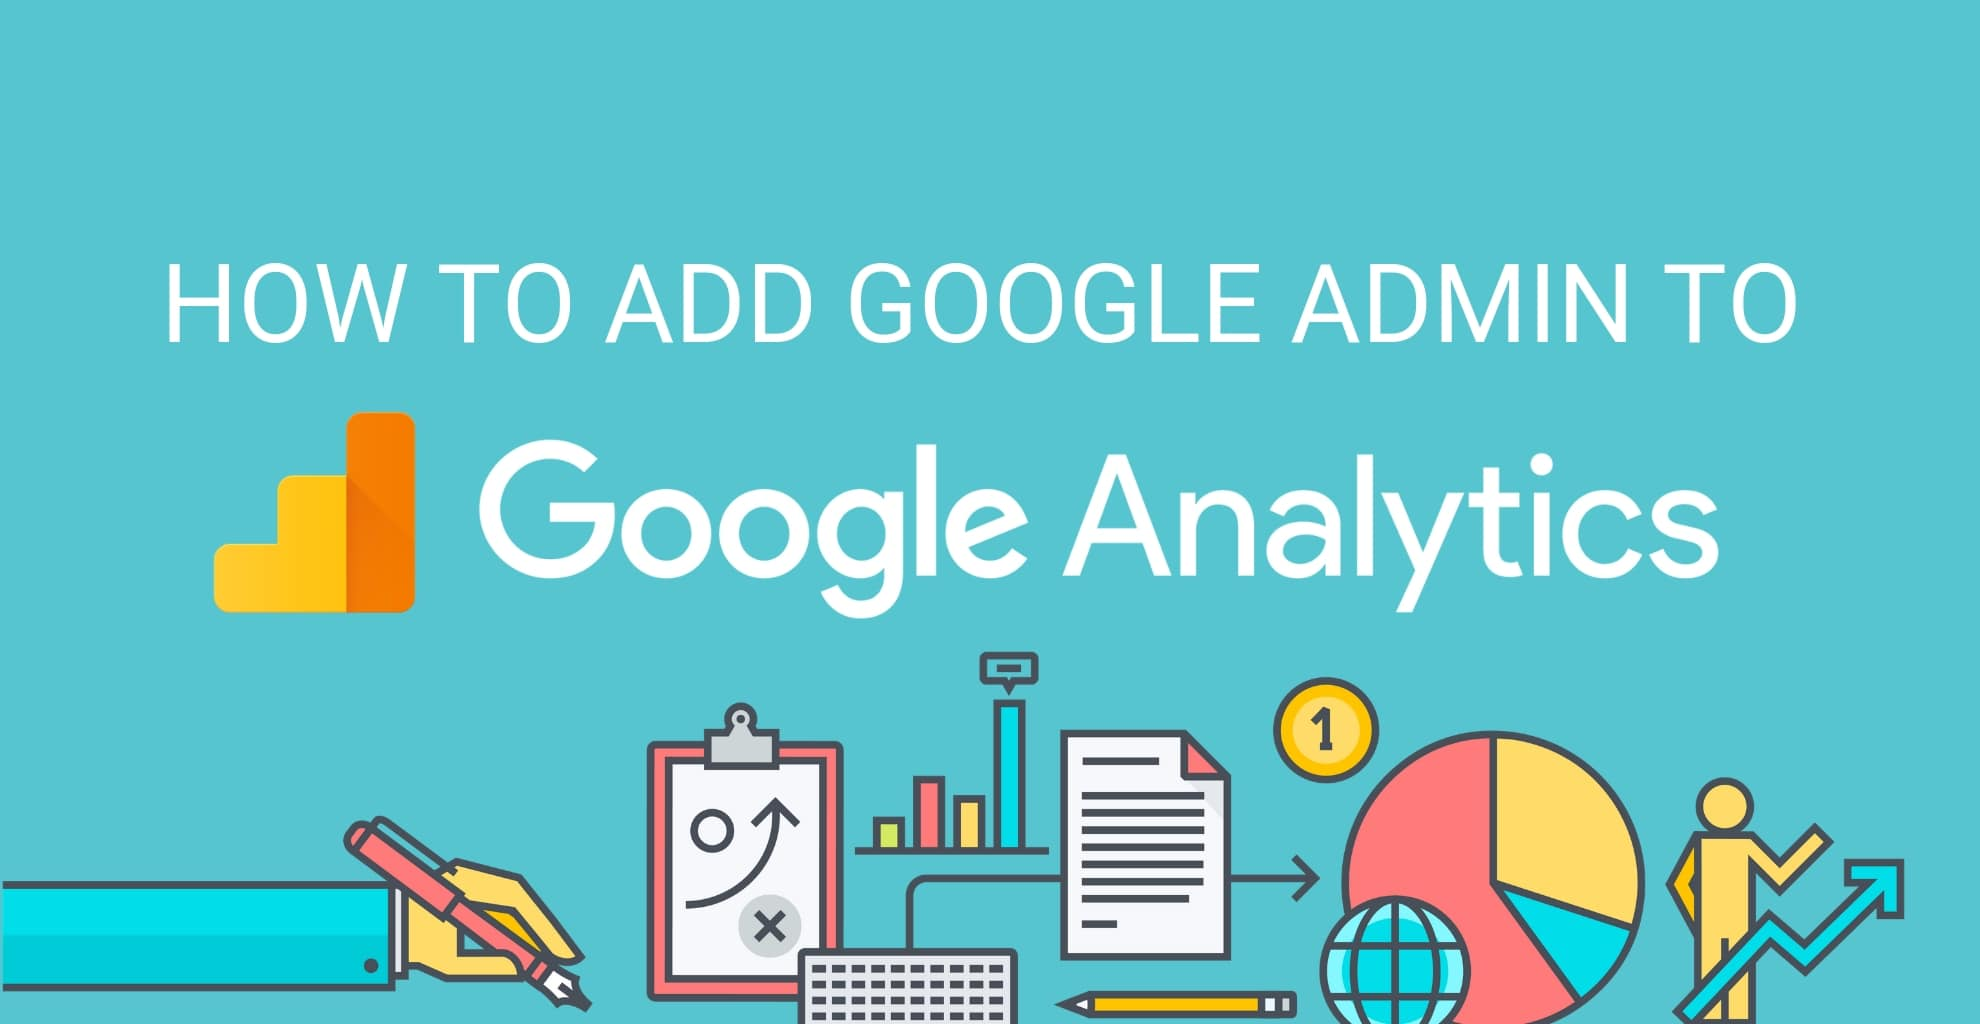 How to Add Google Admin to Google Analytics